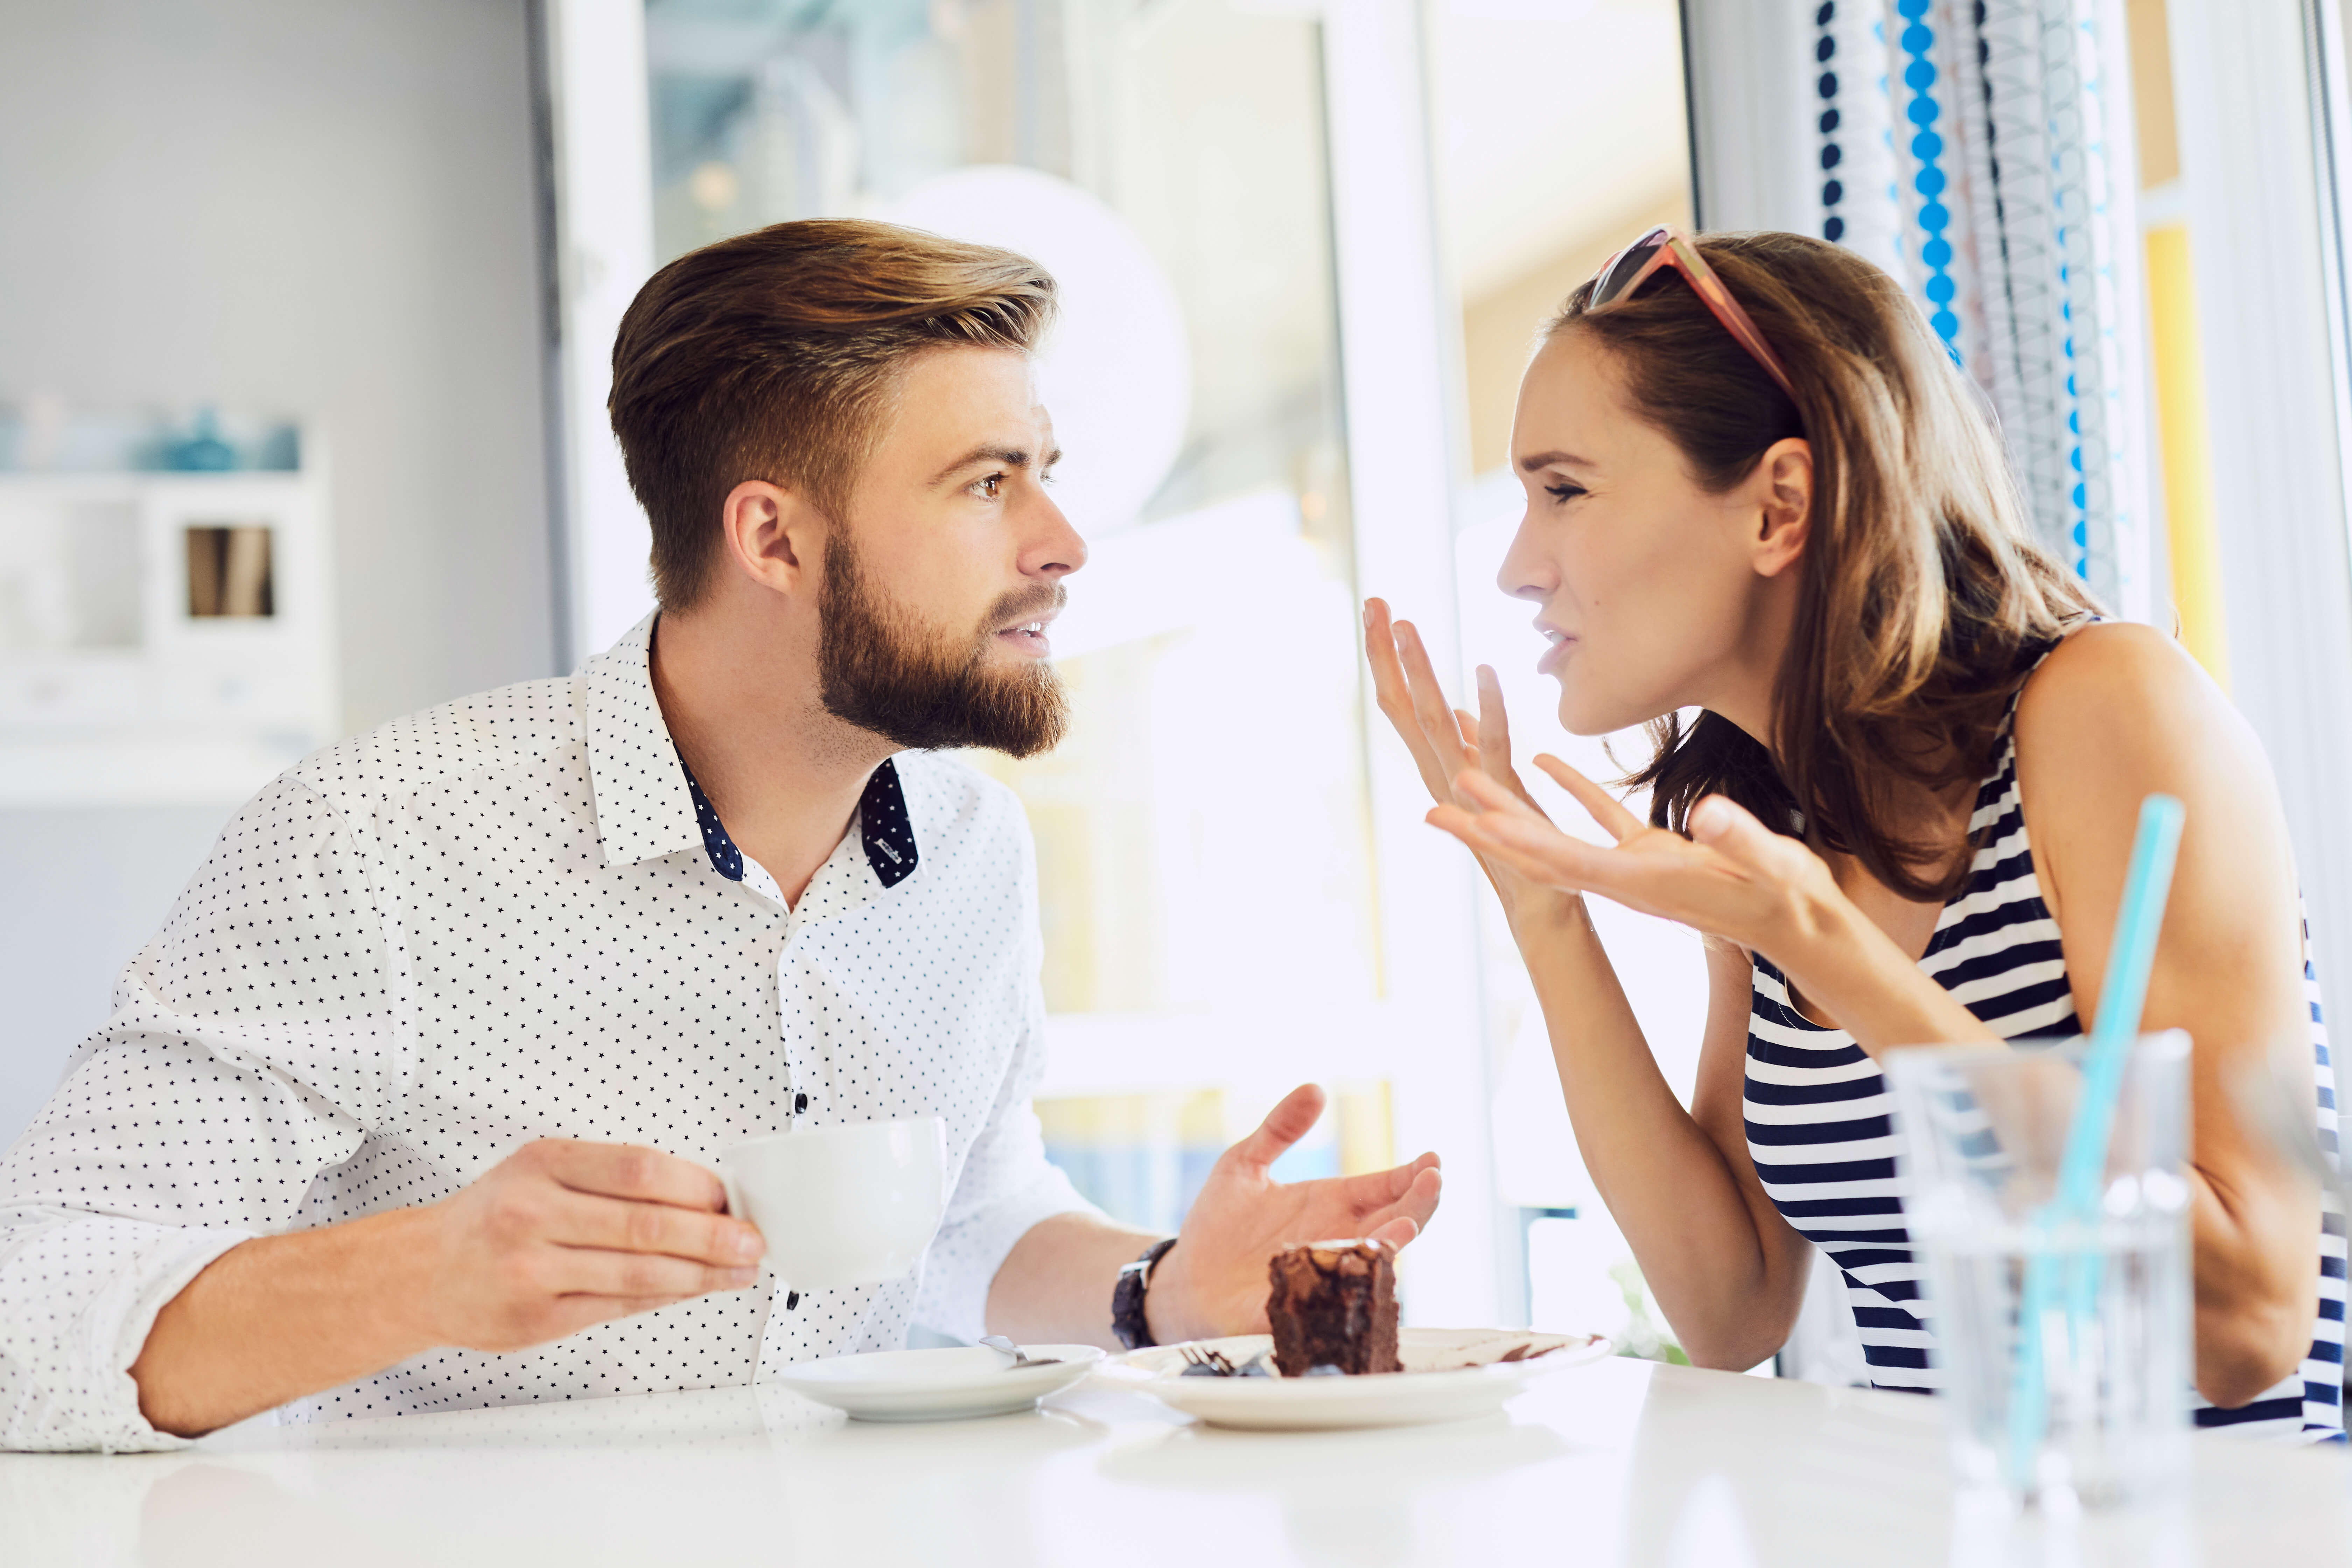 4-issues-partners-argue-about-most